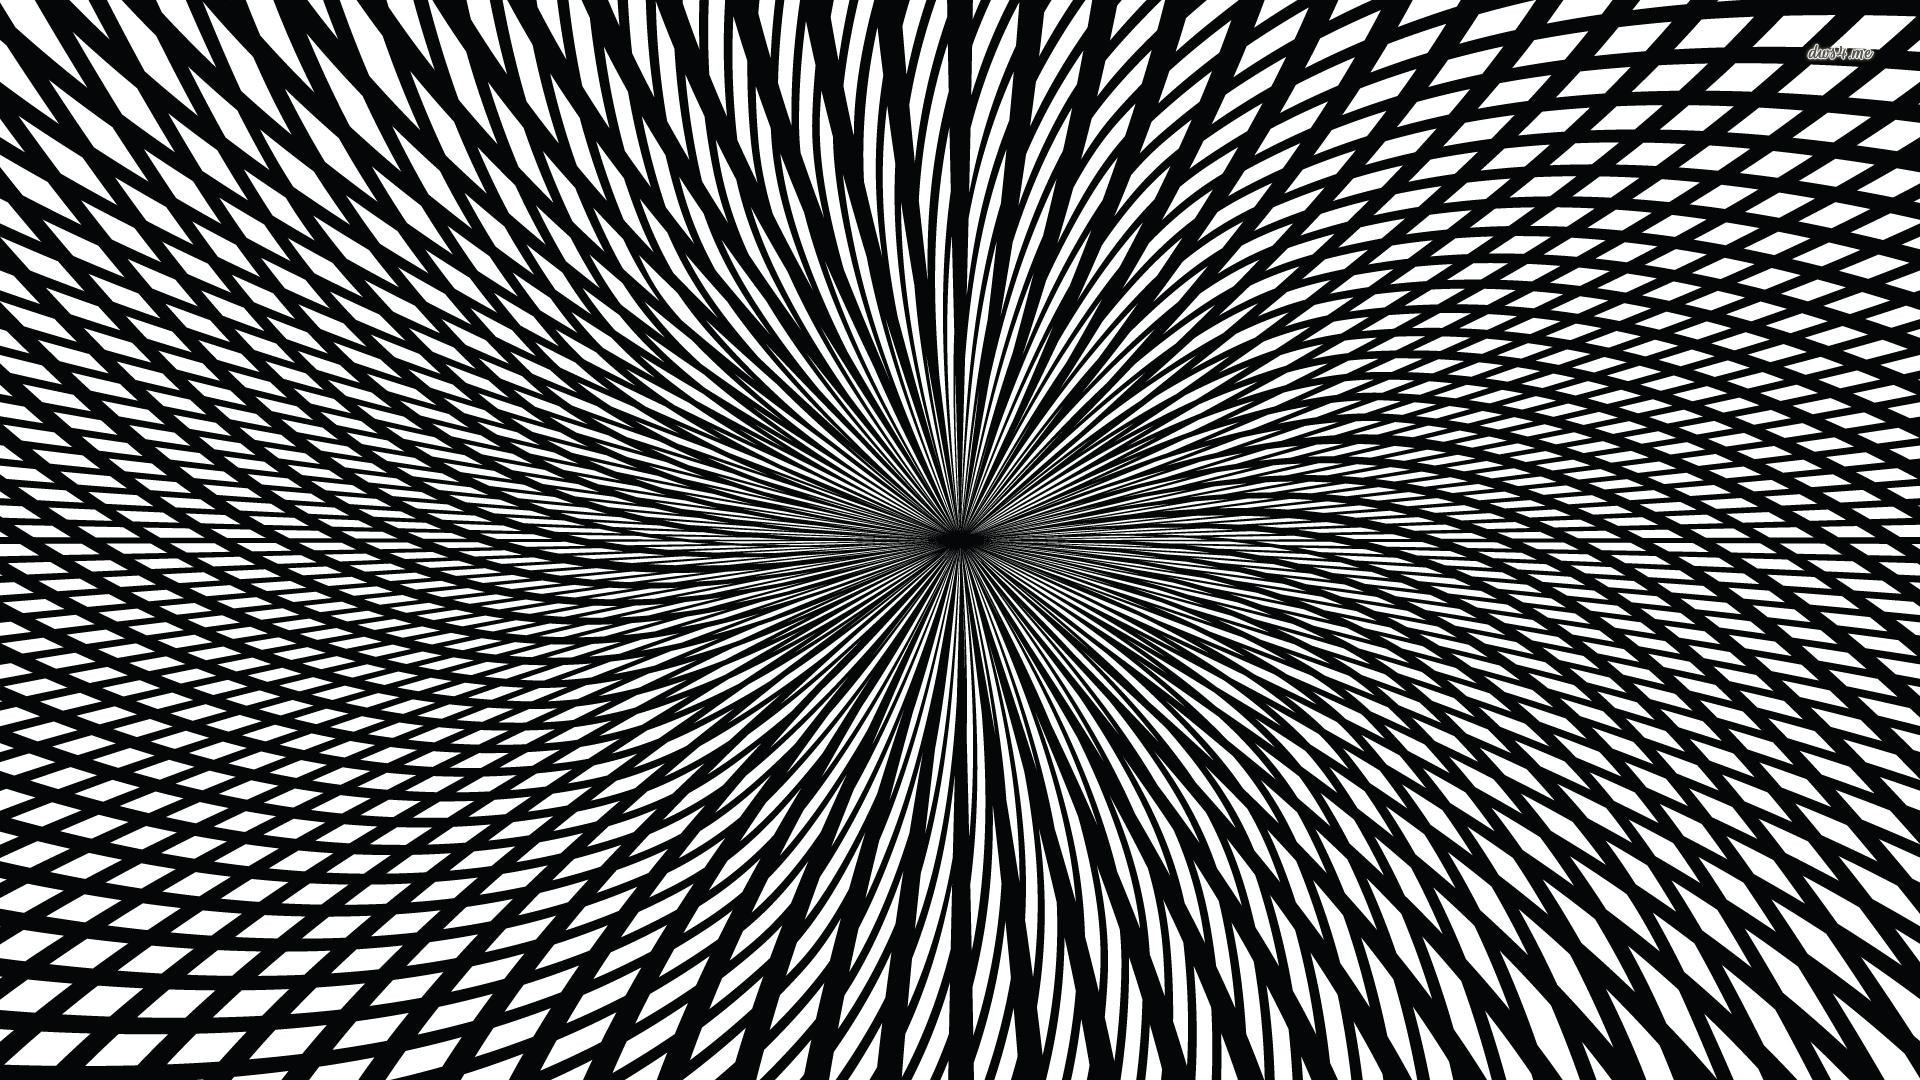 10 Best images about **Optical Illusion Wallpaper** on Pinterest